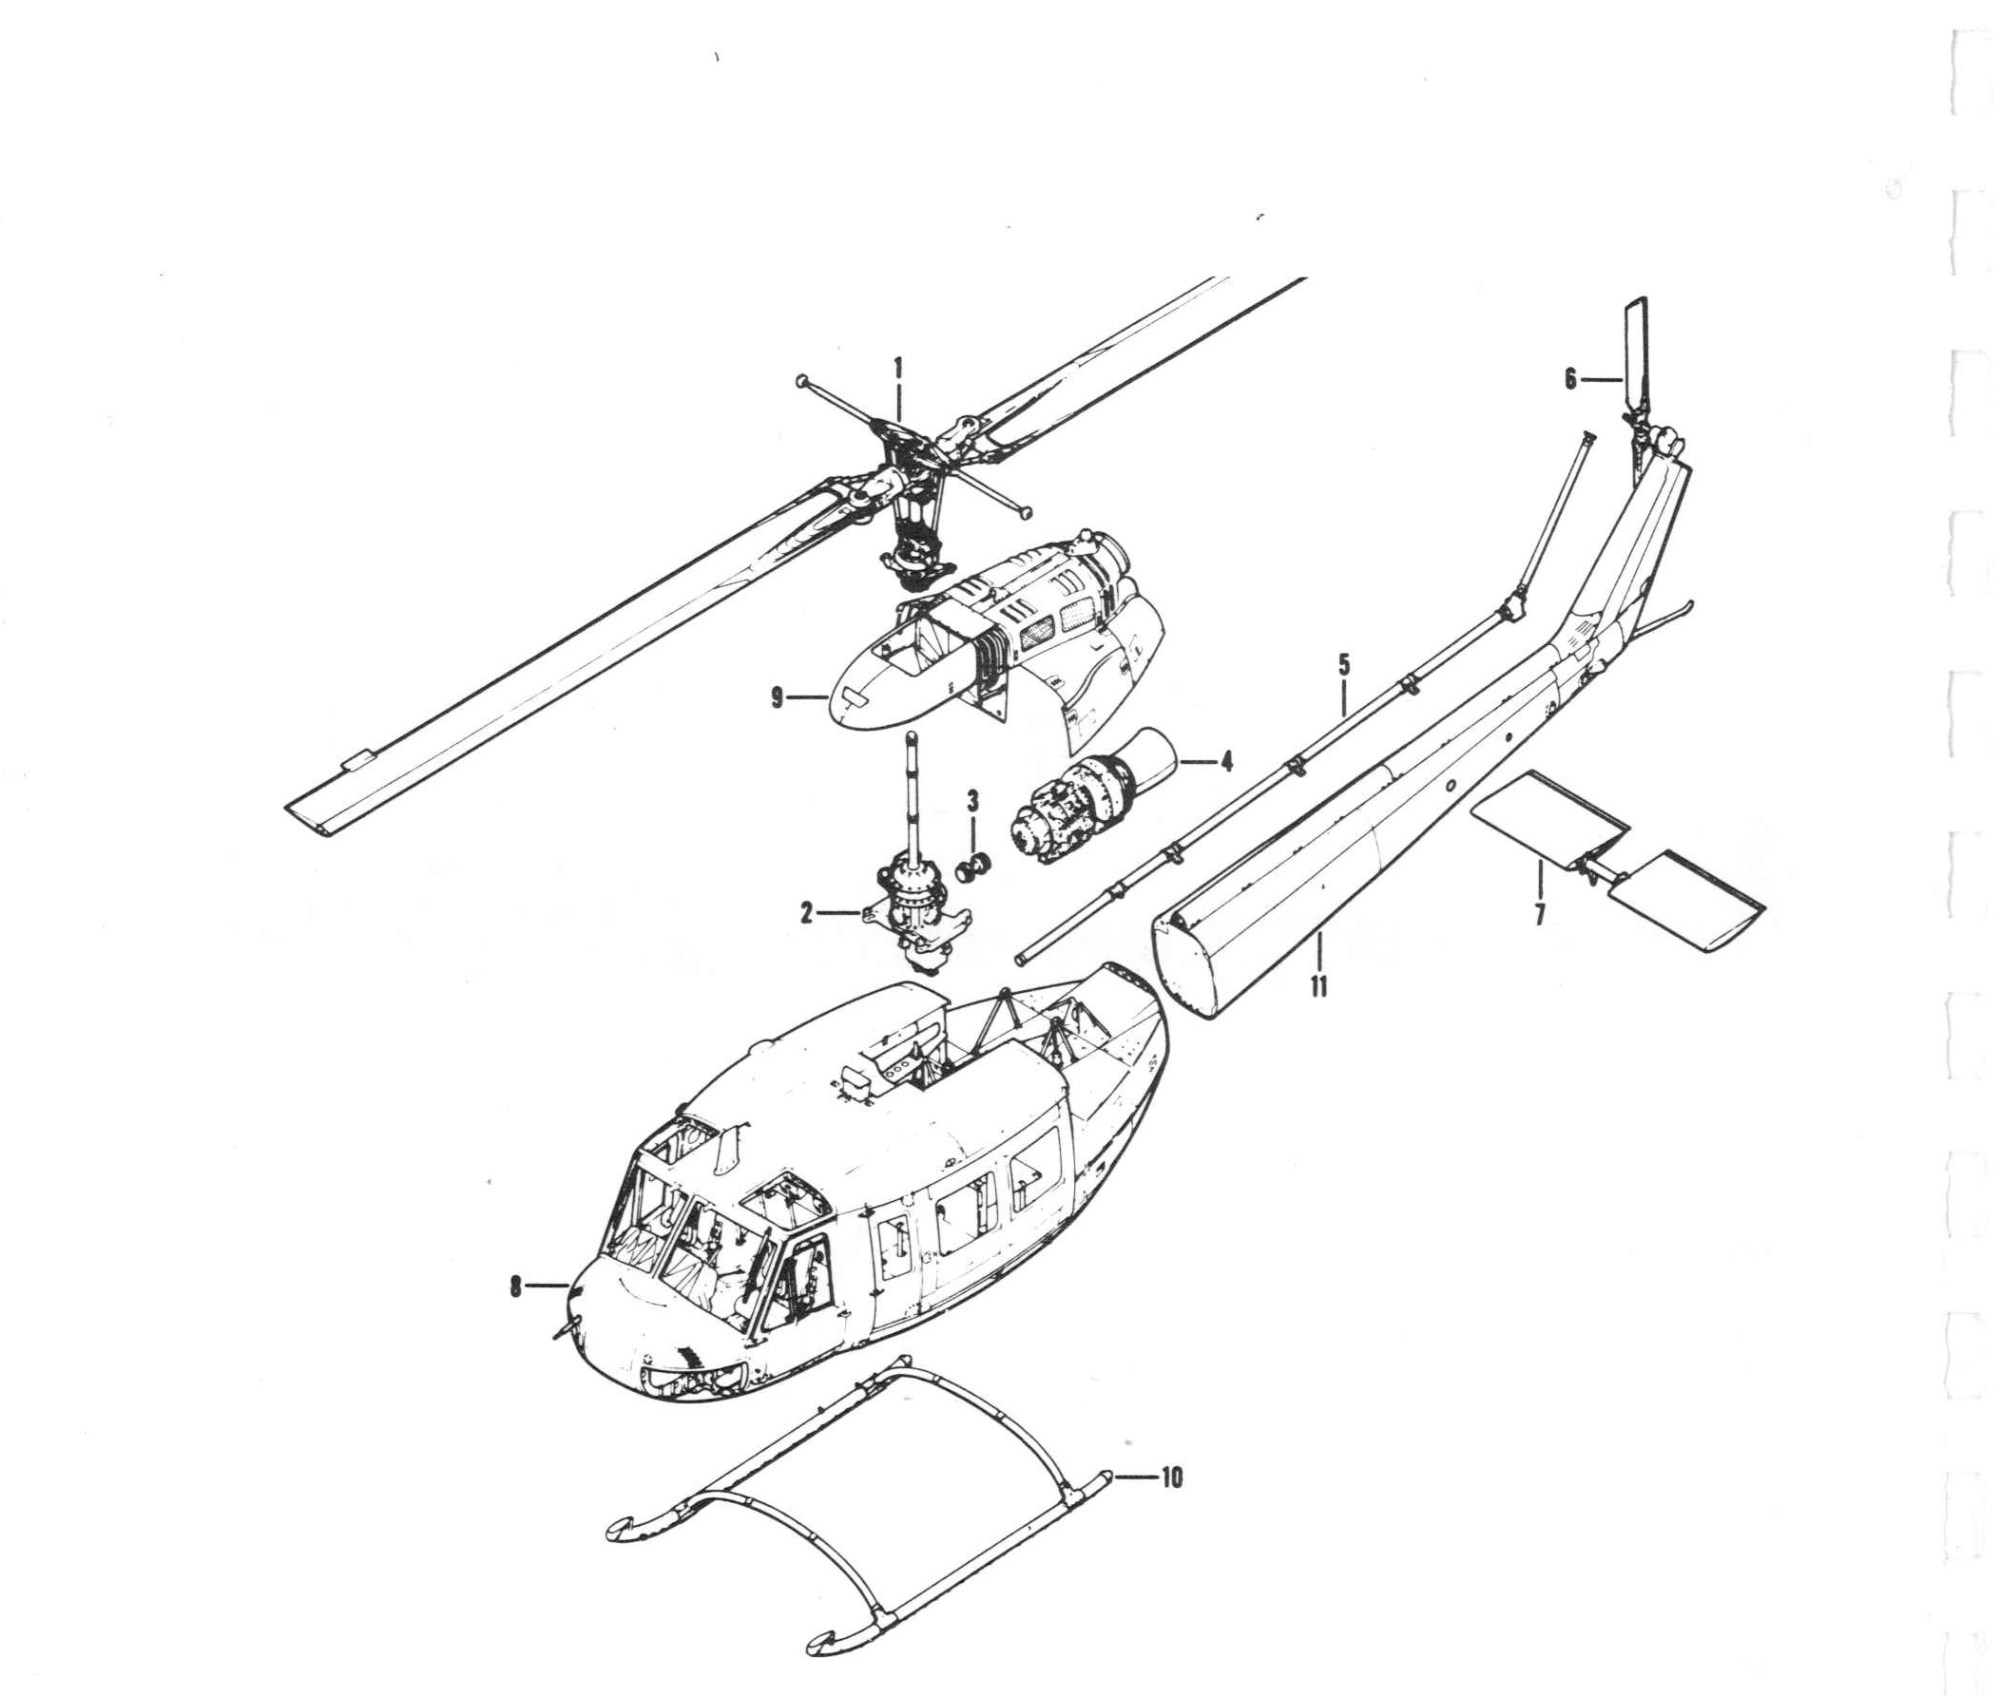 hight resolution of bell model 205a 1 image downloads rh huey co uk helicopter main parts helicopter engine diagram